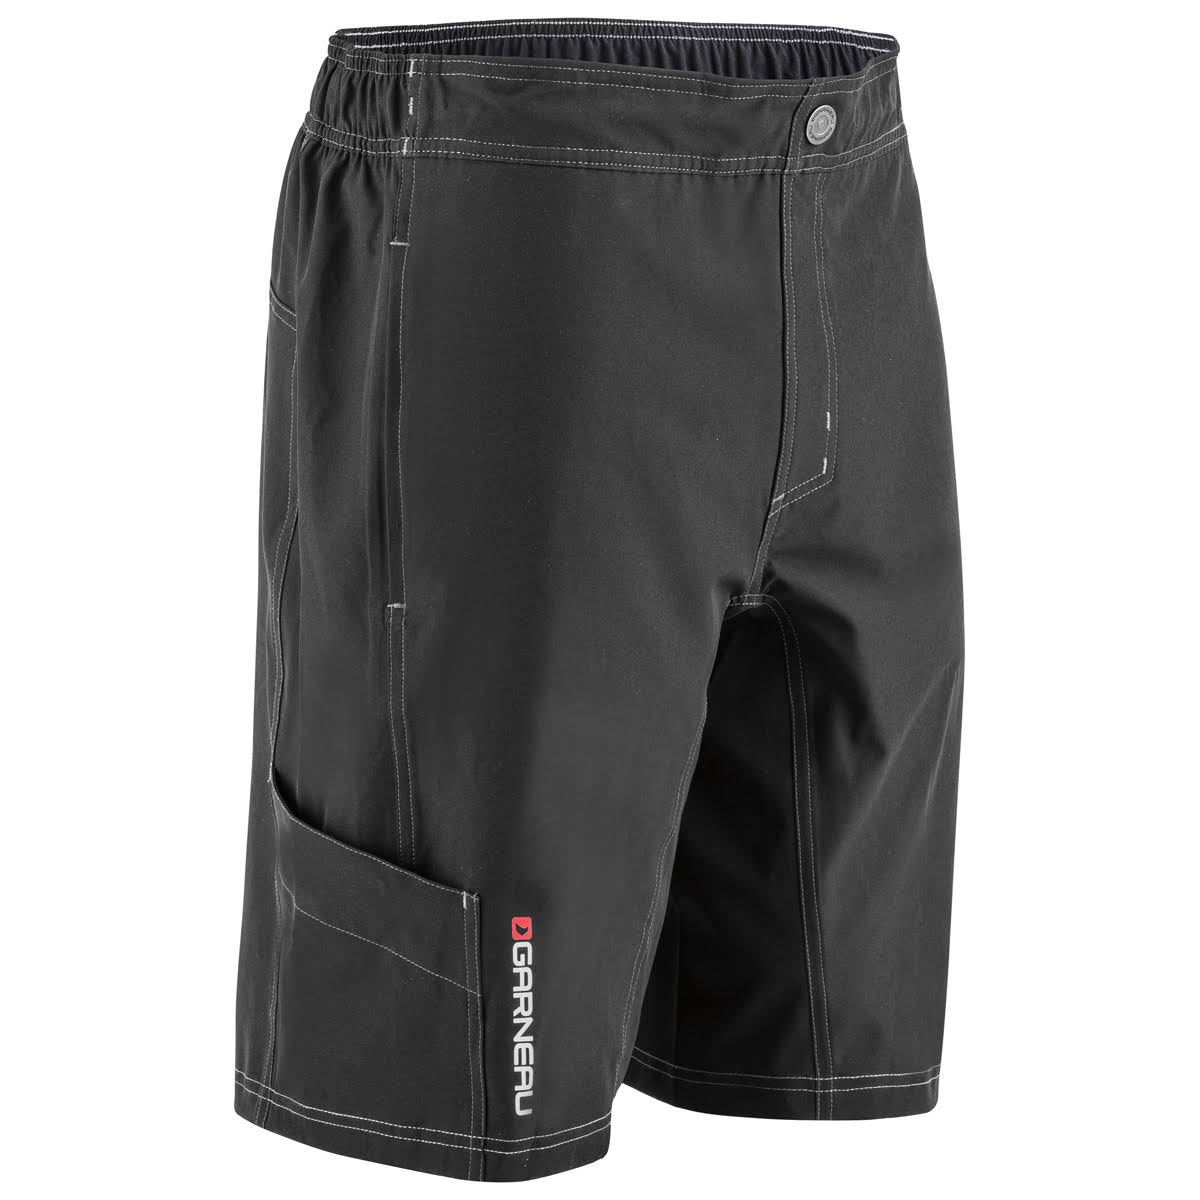 Louis Garneau Range Mens Bike Short 2017 - Black, X-Large